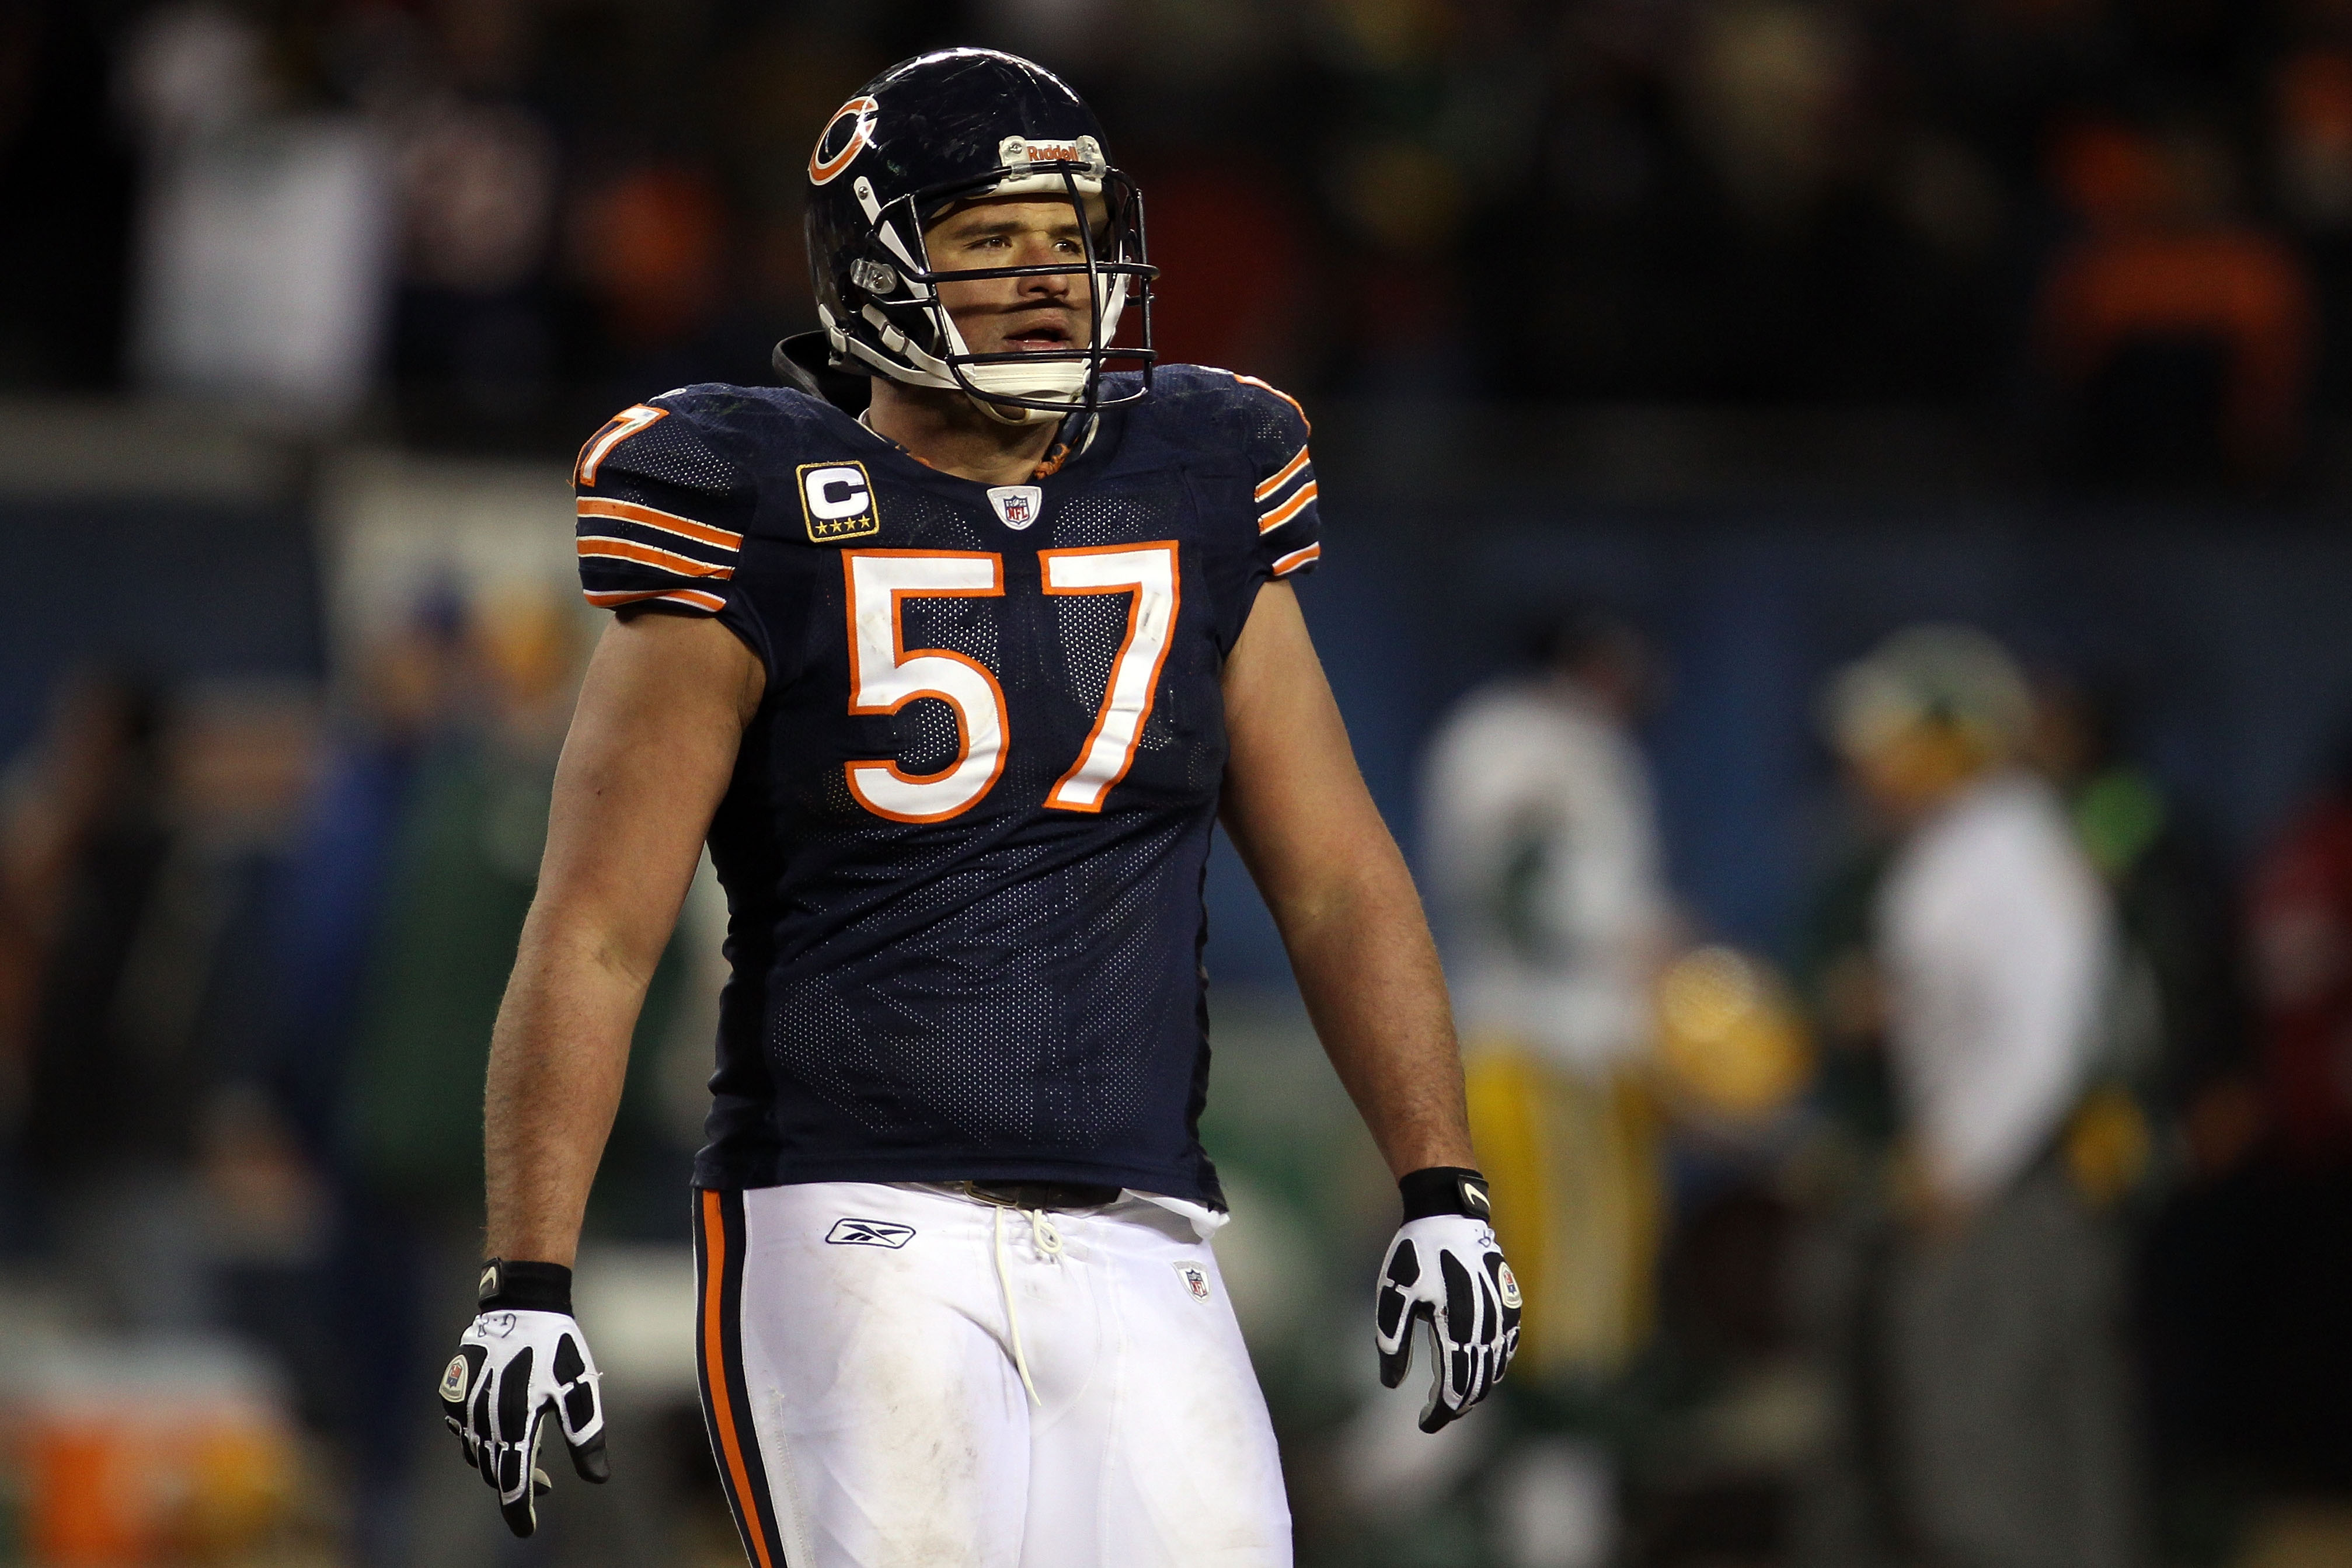 CHICAGO, IL - JANUARY 23:  Olin Kreutz #57 of the Chicago Bears looks on late in the fourth quarter against the Green Bay Packers in the NFC Championship Game at Soldier Field on January 23, 2011 in Chicago, Illinois.  (Photo by Jonathan Daniel/Getty Imag